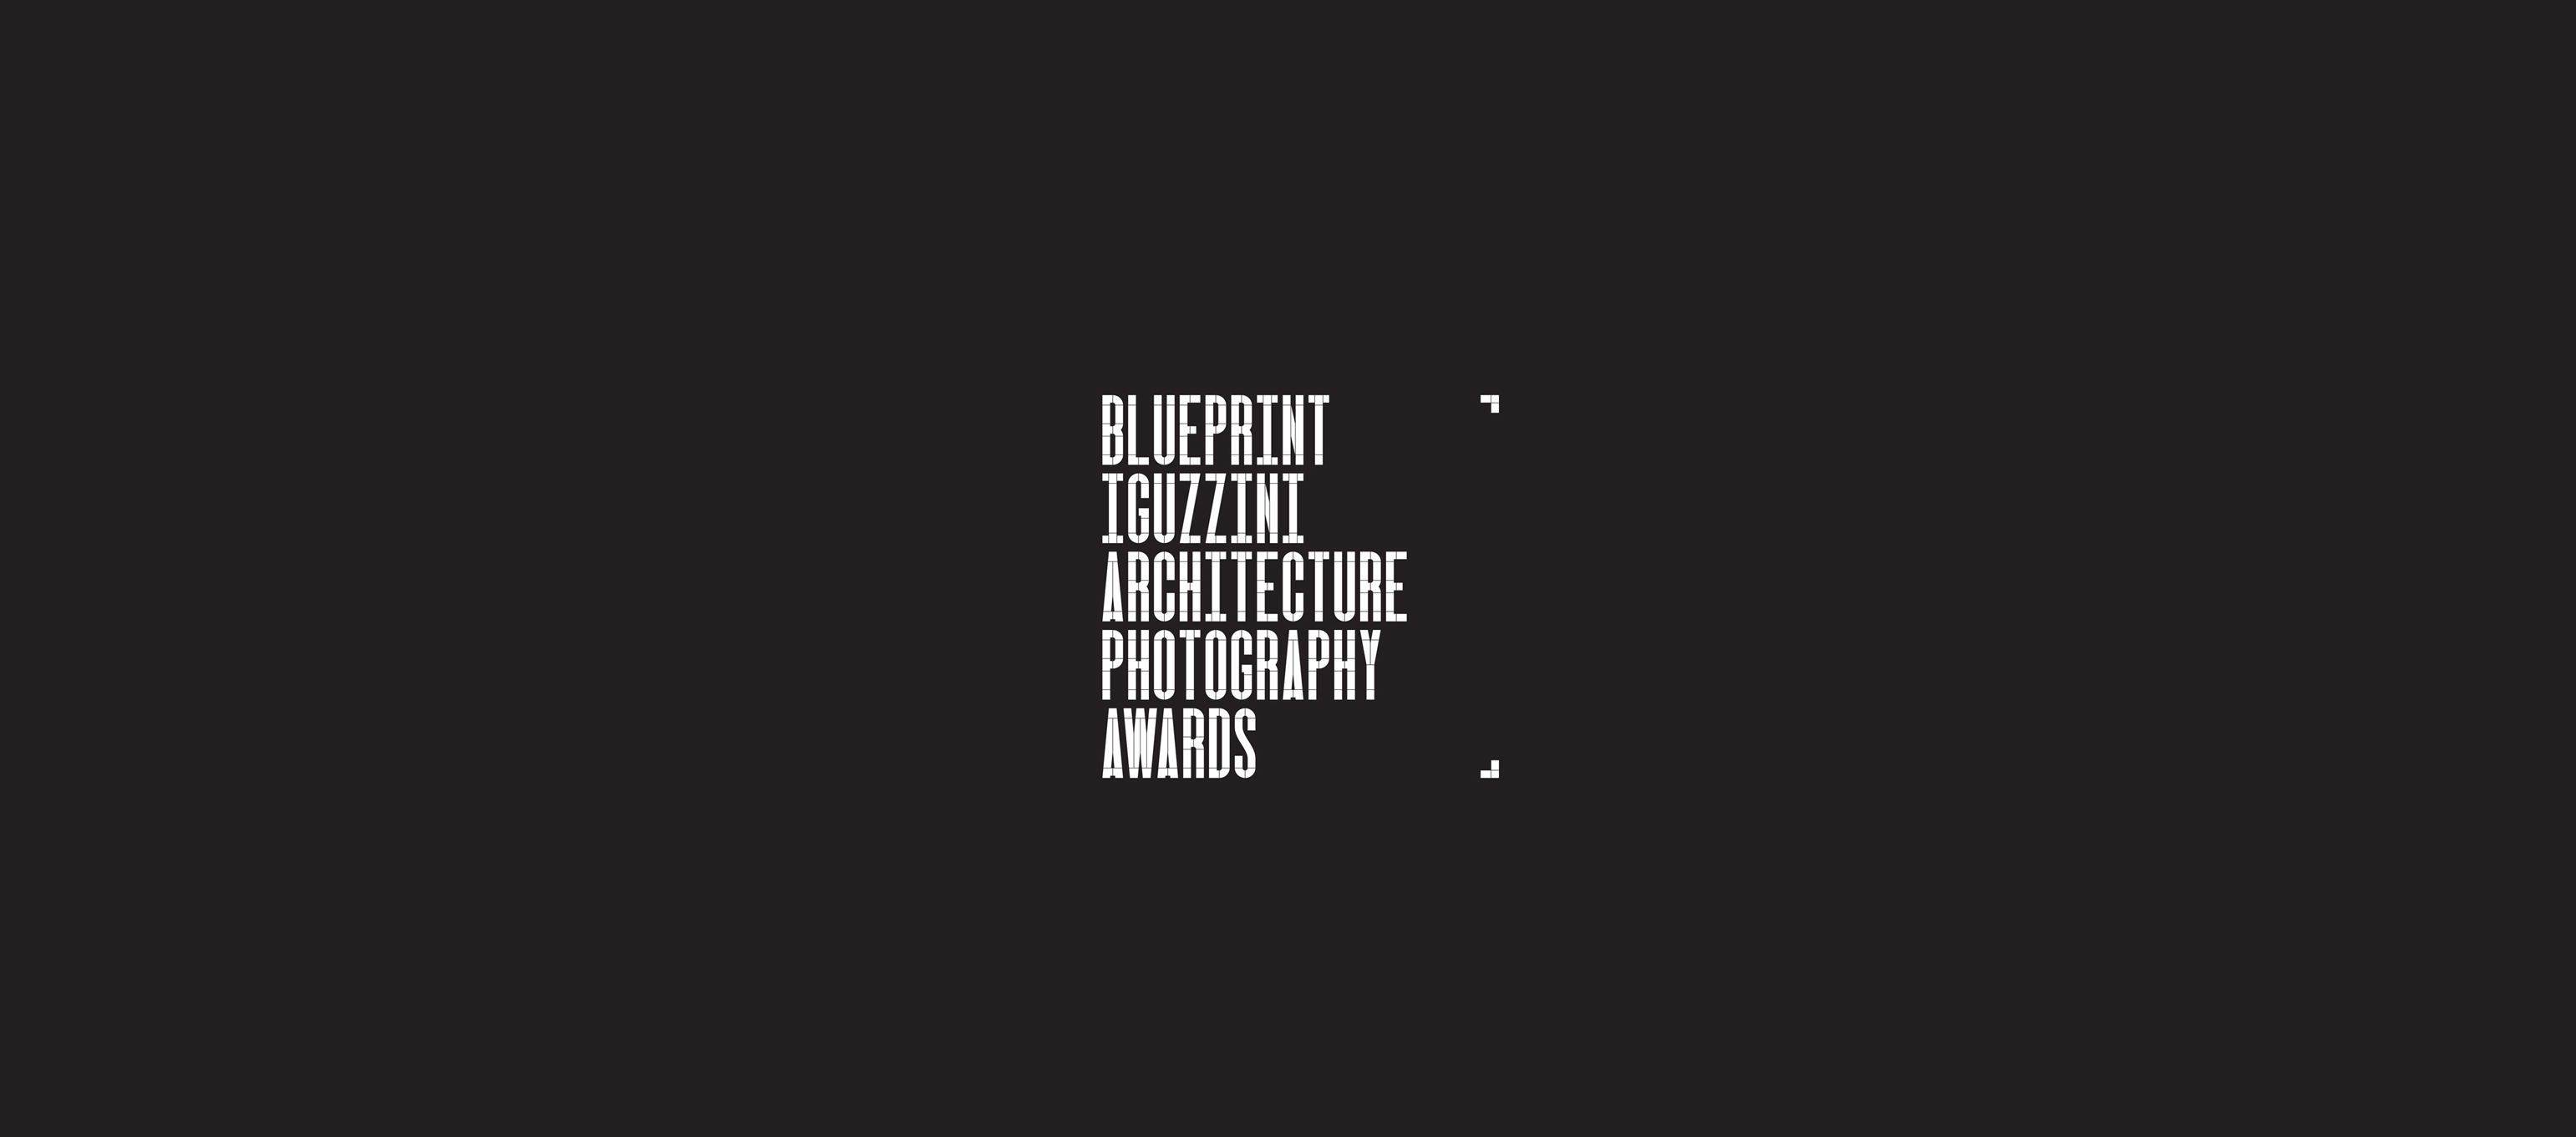 Blueprint iGuzzini Architecture Photography Awards